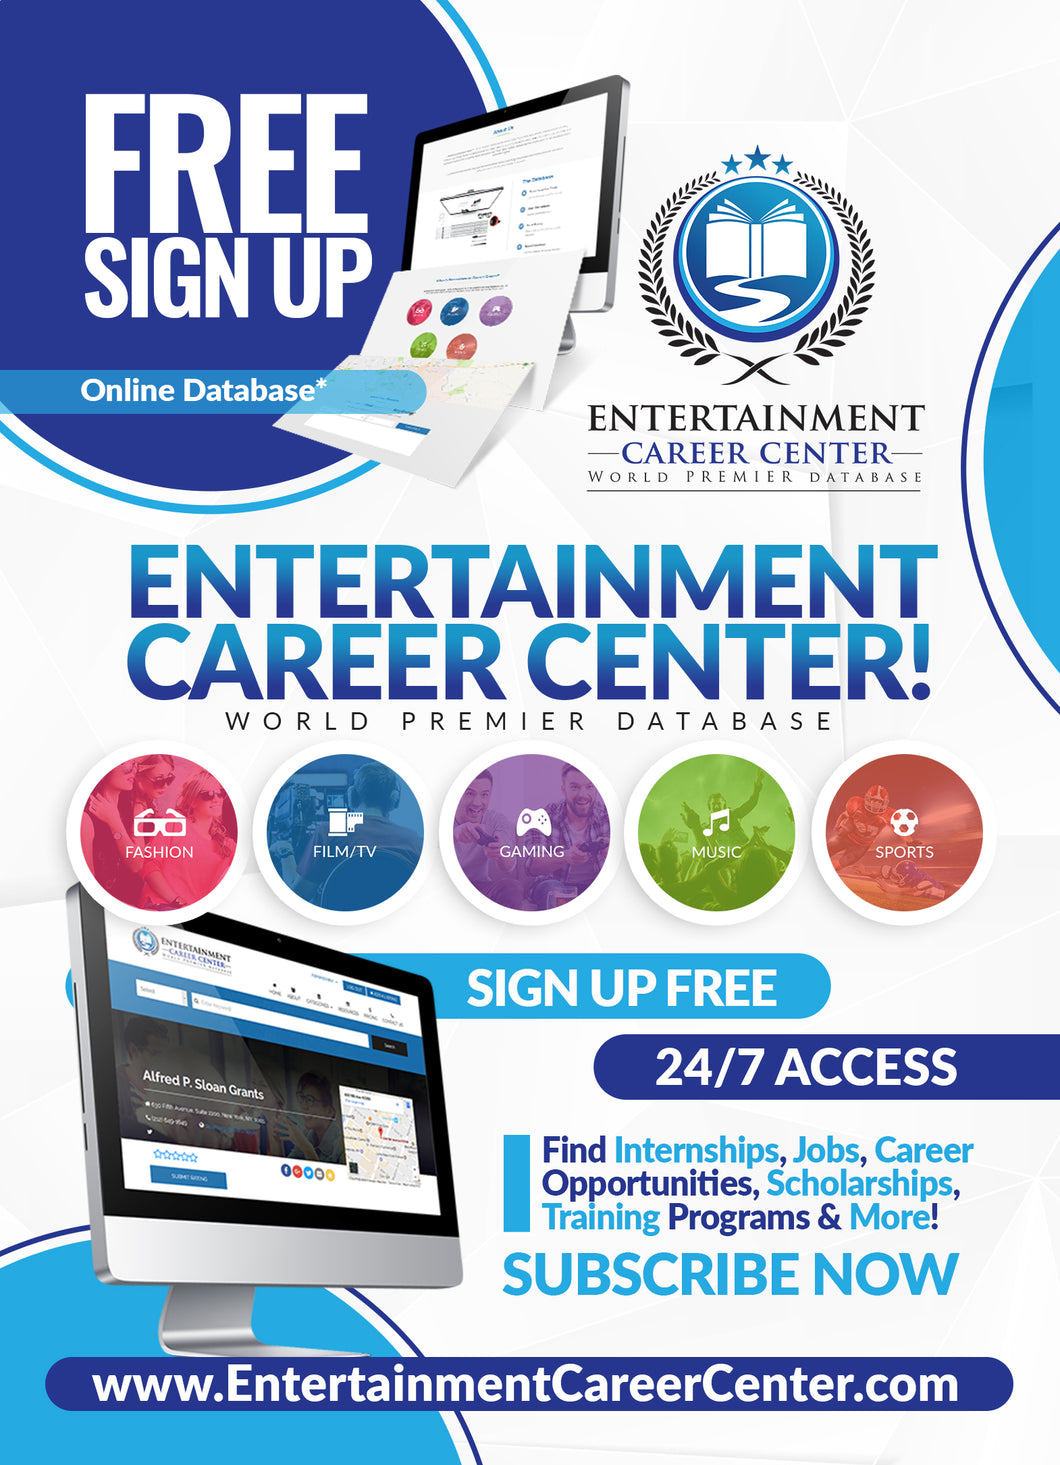 Entertainment Career Center: Database - Fashion, Film/TV, Gaming, Music & Sports. New listings are added daily...so log in often! Enter keywords like filmmakers, internships and training programs to get started. Sign up free.